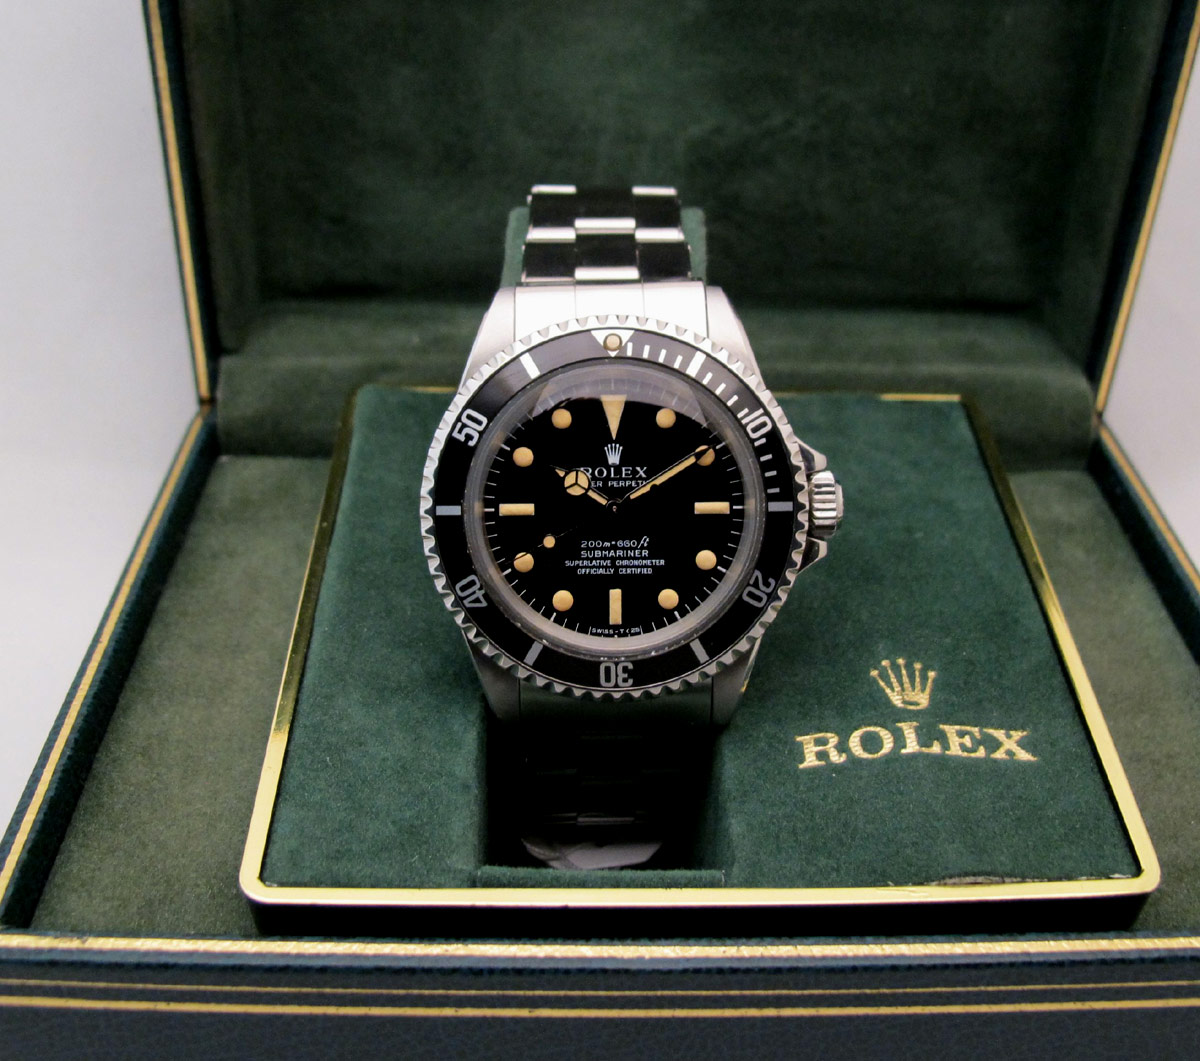 ROLEX Submariner 5512 Meters First -